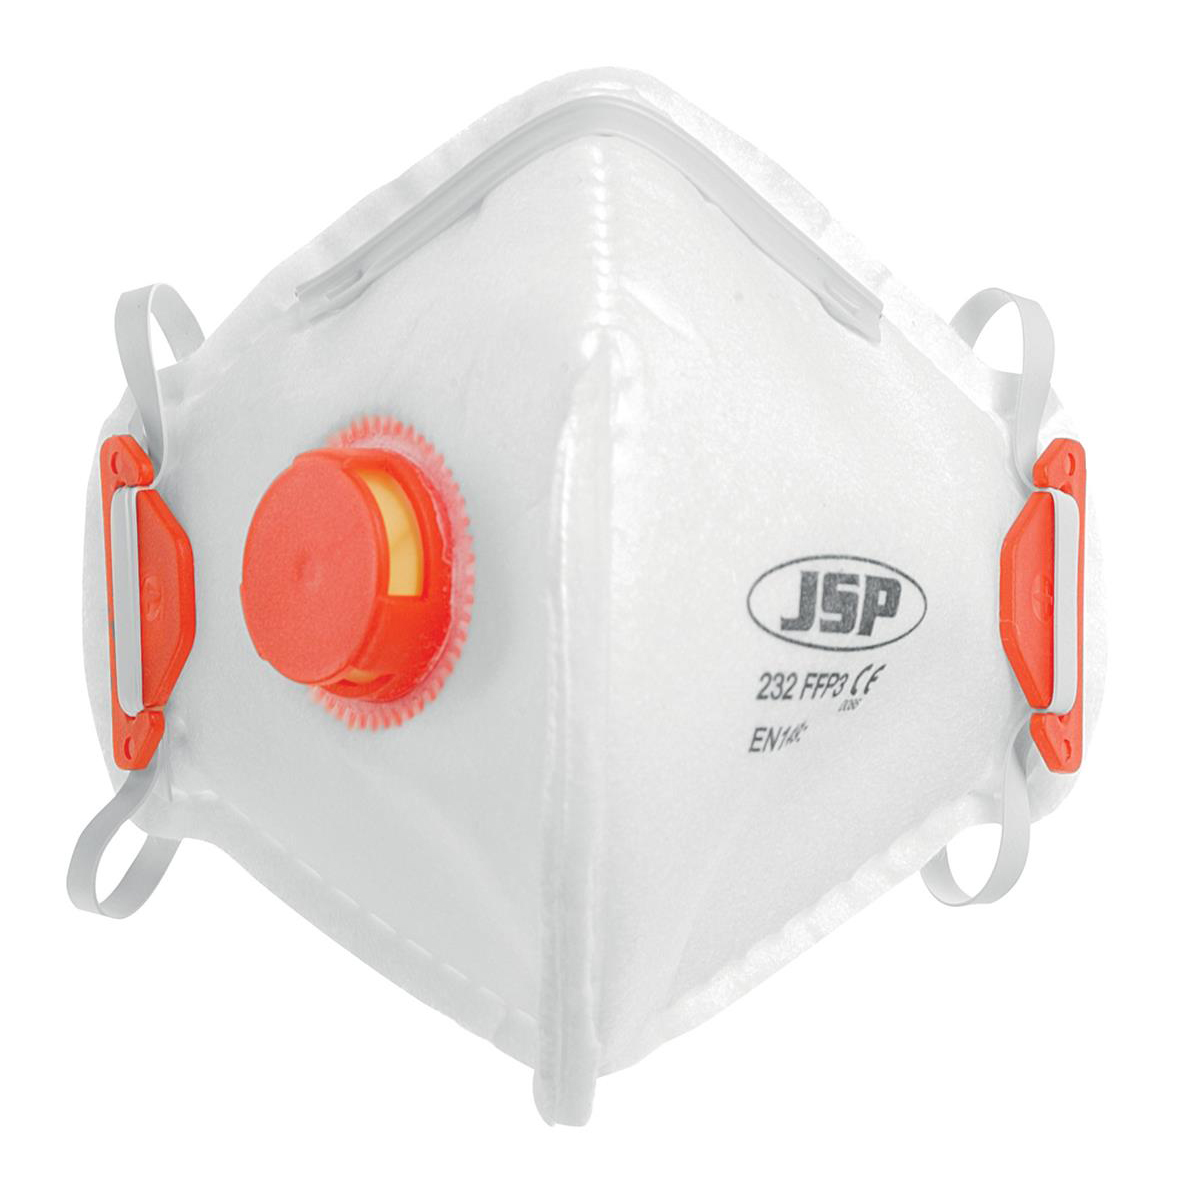 JSP Disposable Mask Valved Fold-flat FFP3 Class 3 EN149:2001 & A1:2009 Ref BEB130-101-000 Pack 10